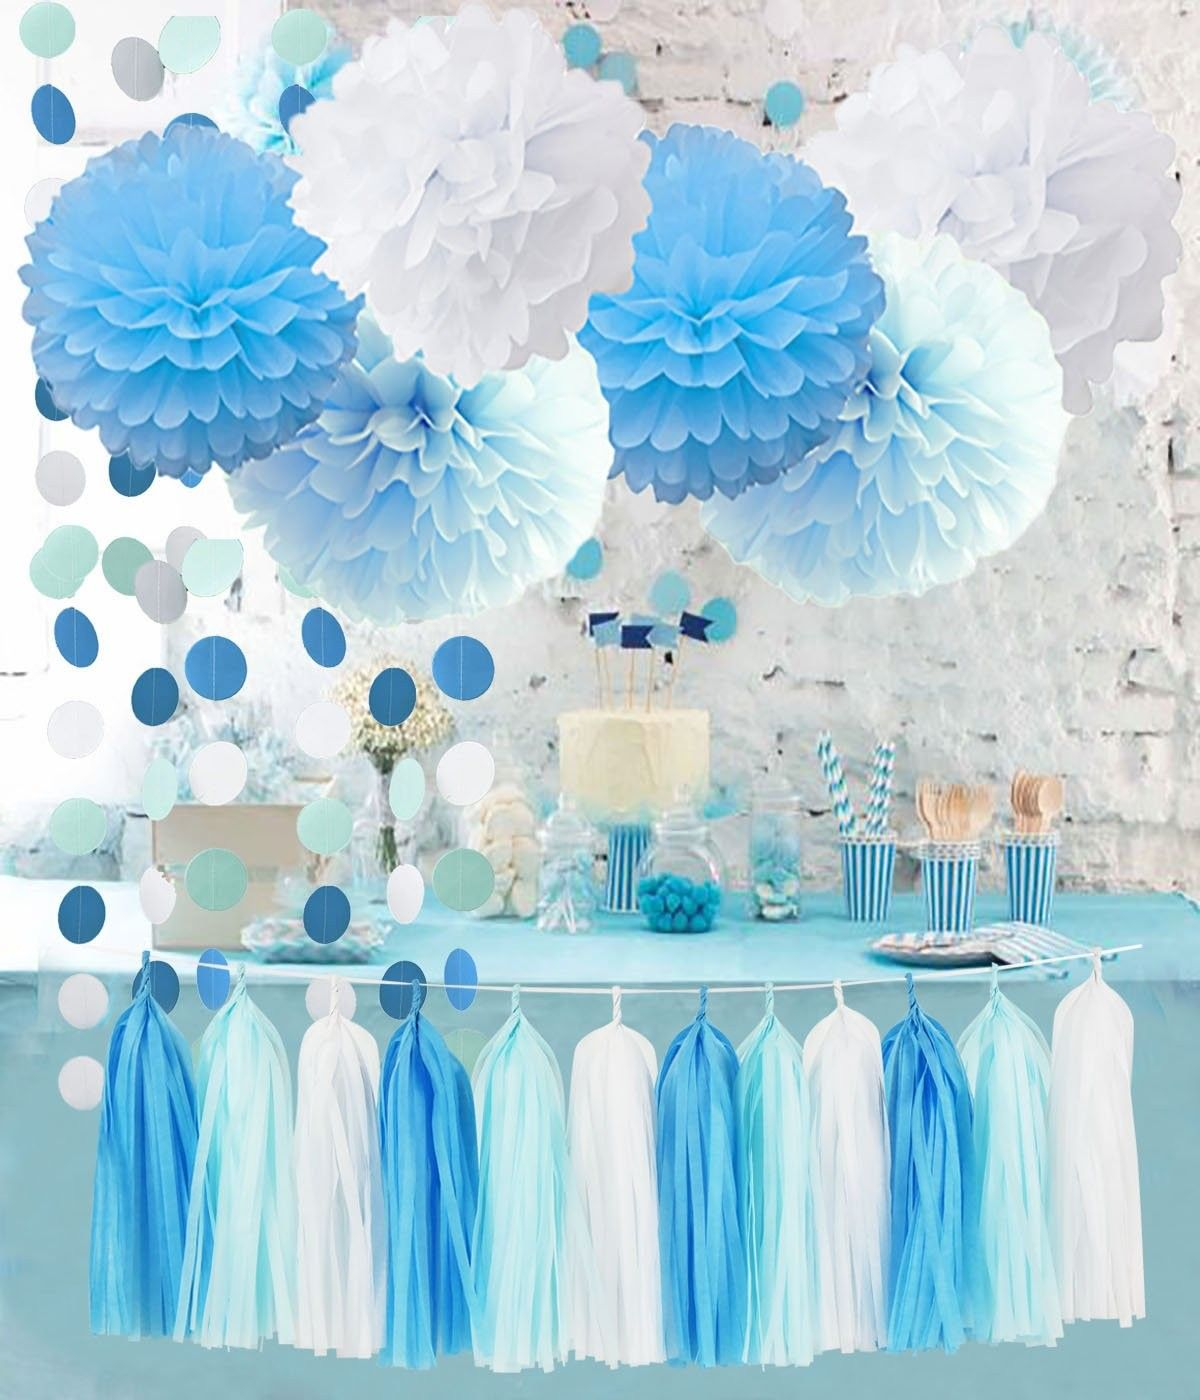 Birthday Party Decorations Baby Blue White Turquoise Blue Tissue